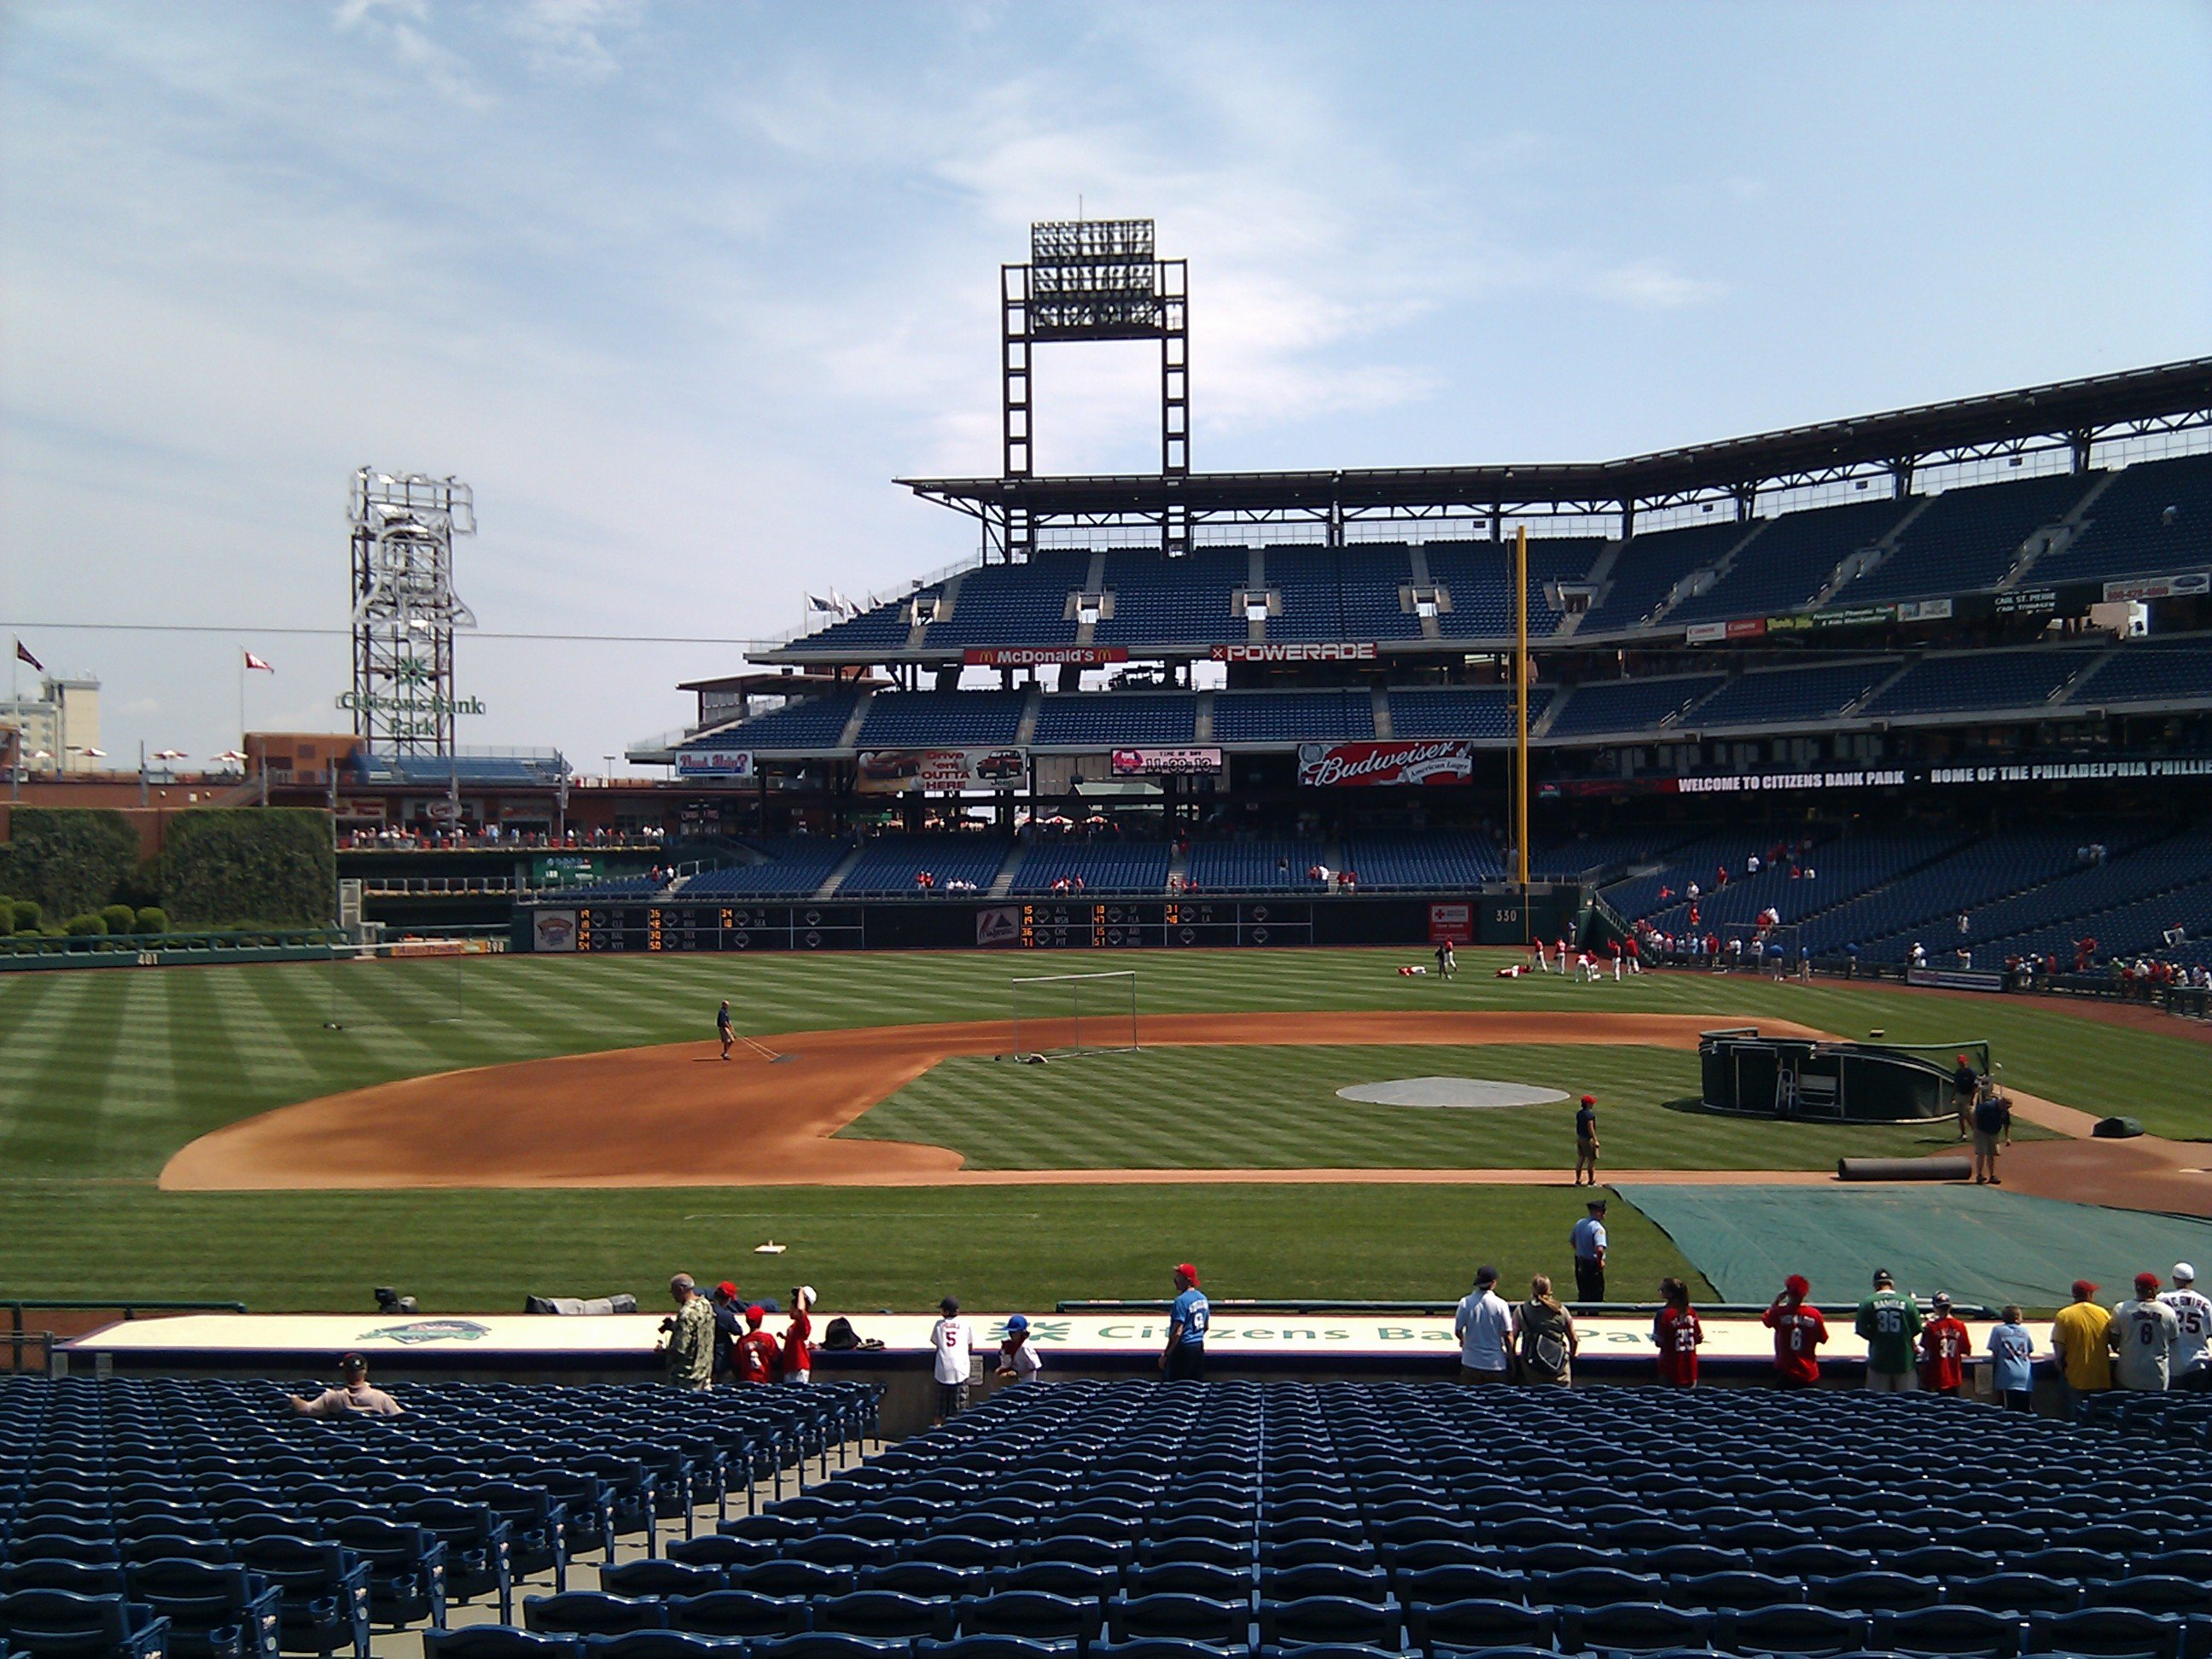 Citizens Bank Park Section 130 Row 26 Seat 13